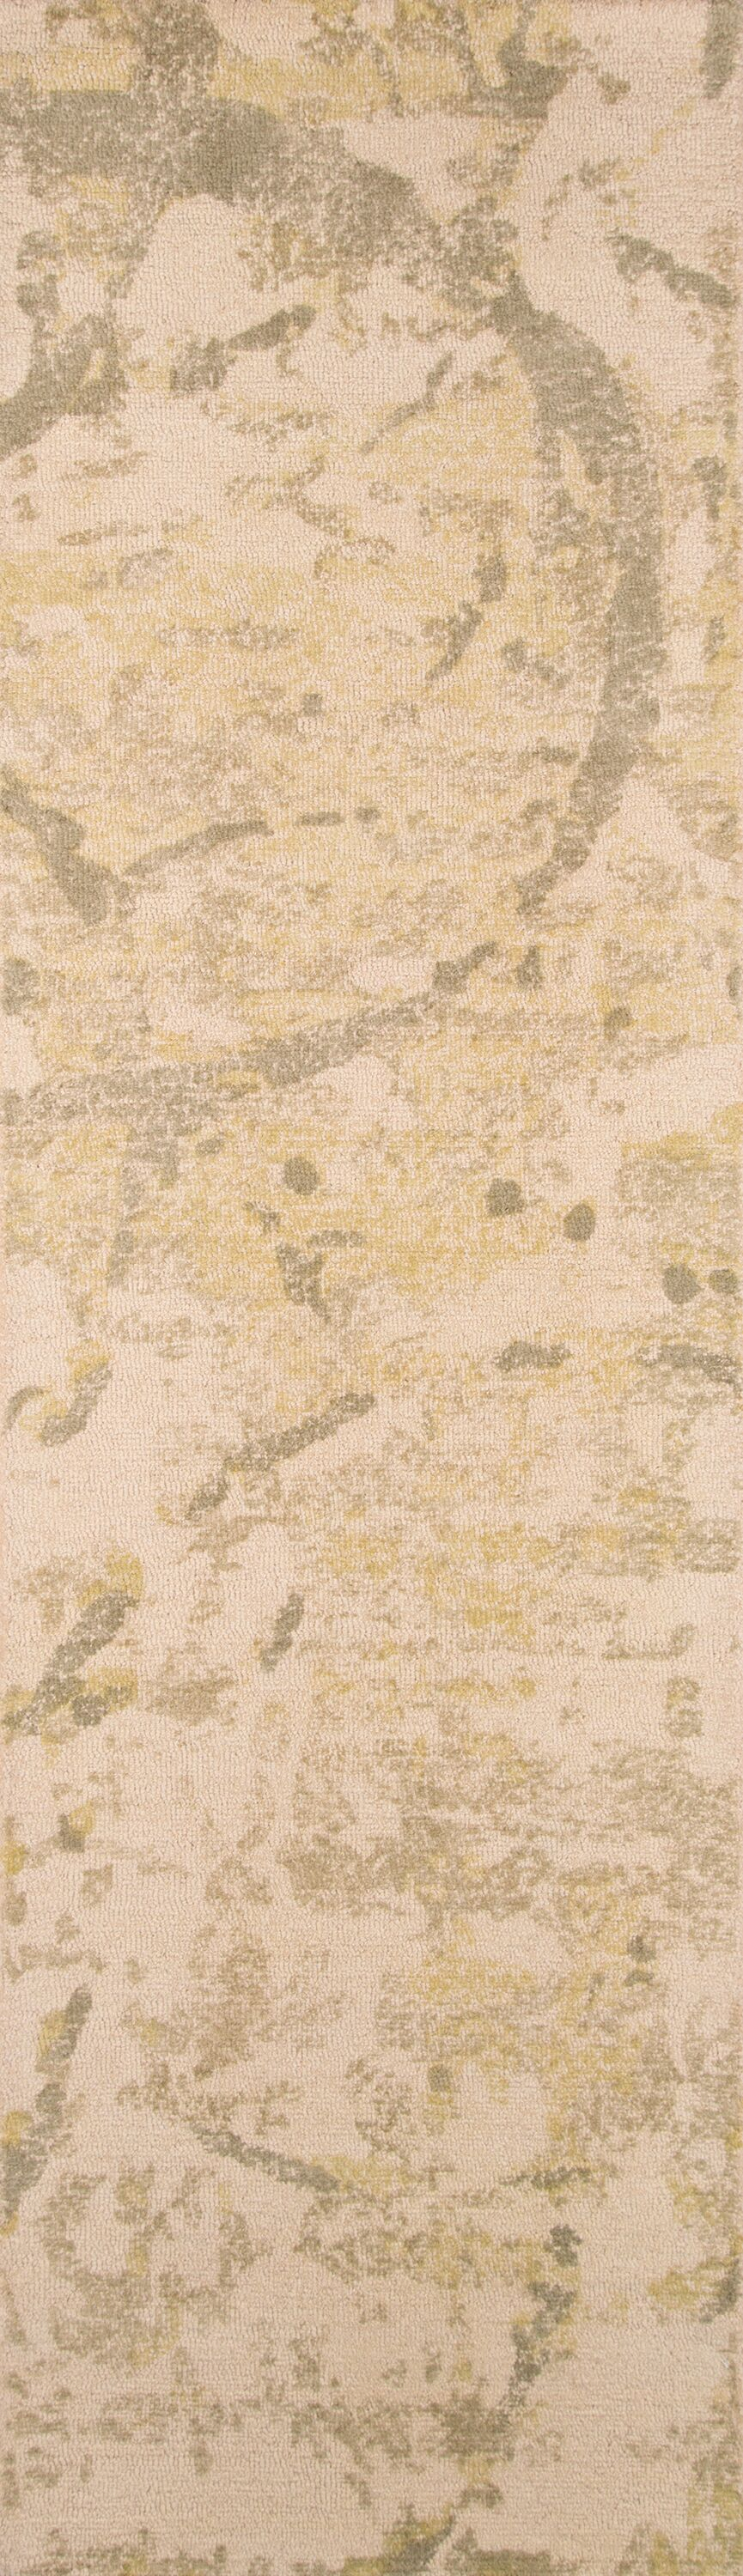 Stanford Hand-Tufted Green/Ivory Area Rug Rug Size: Runner 2'3